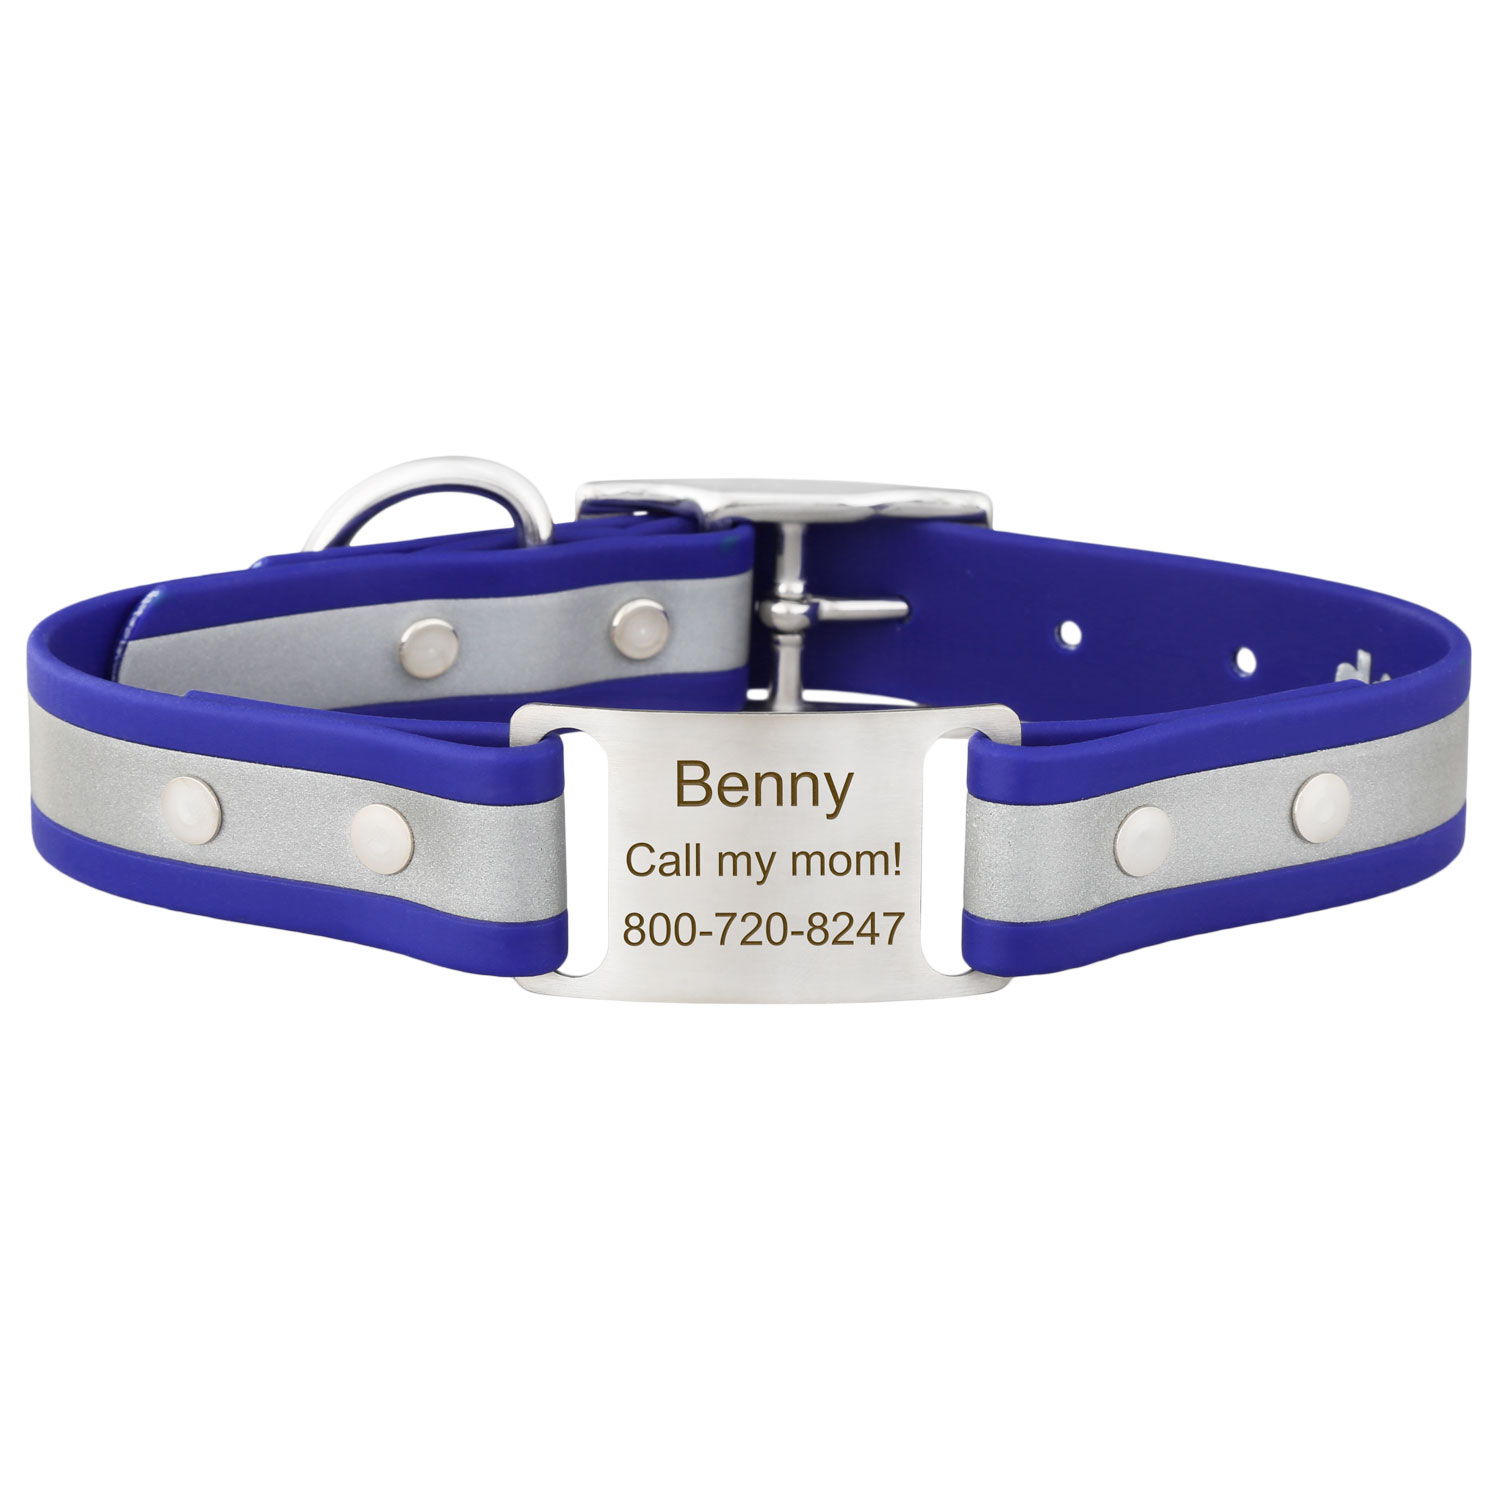 Personalized Reflective ScruffTag Dog Collars